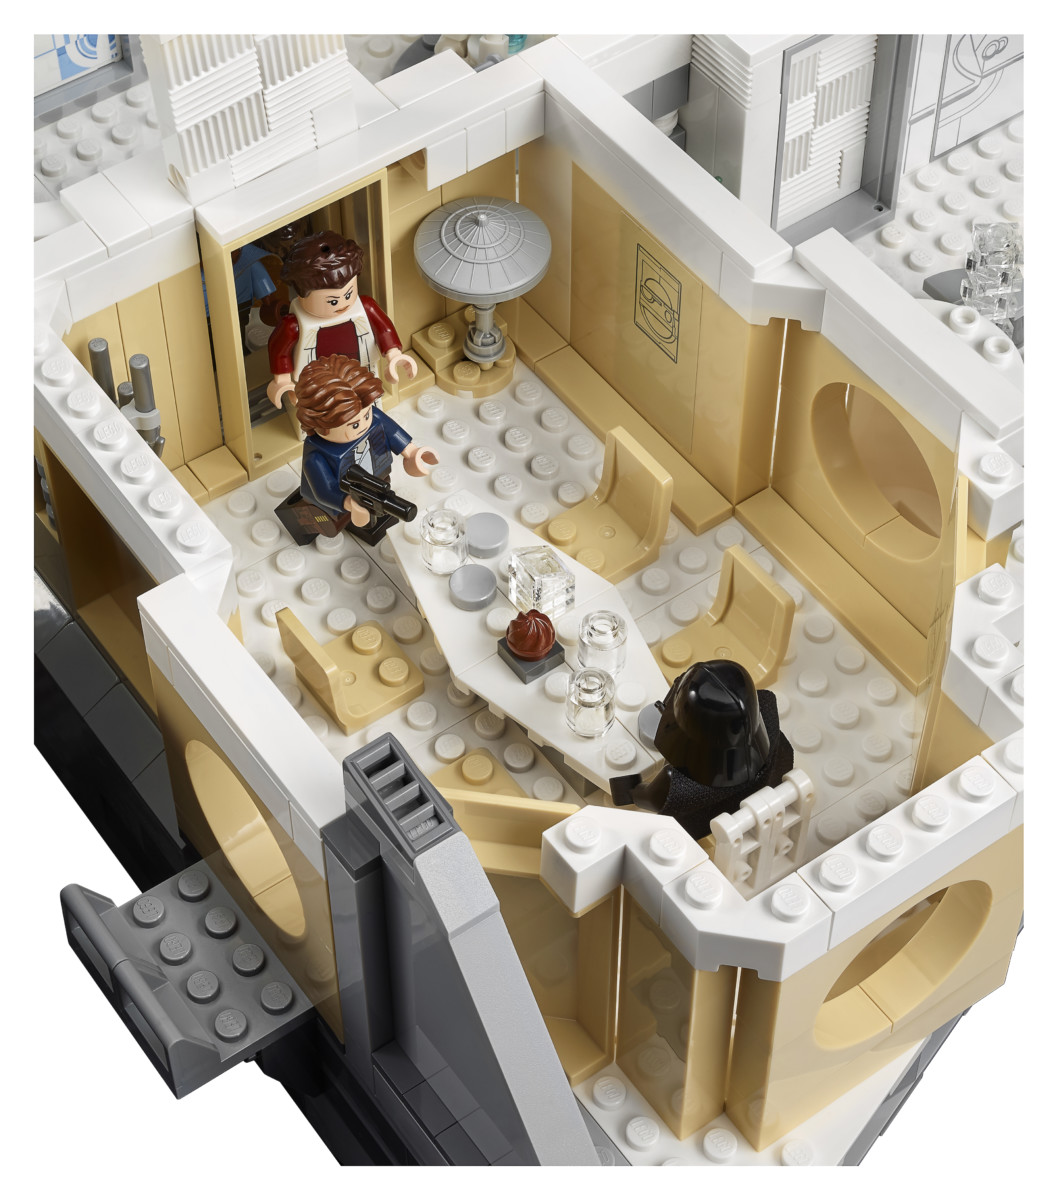 75222 back 09 - LEGO's Star Wars Betrayal at Cloud City is a brilliant recreation of the Empire Strikes Back